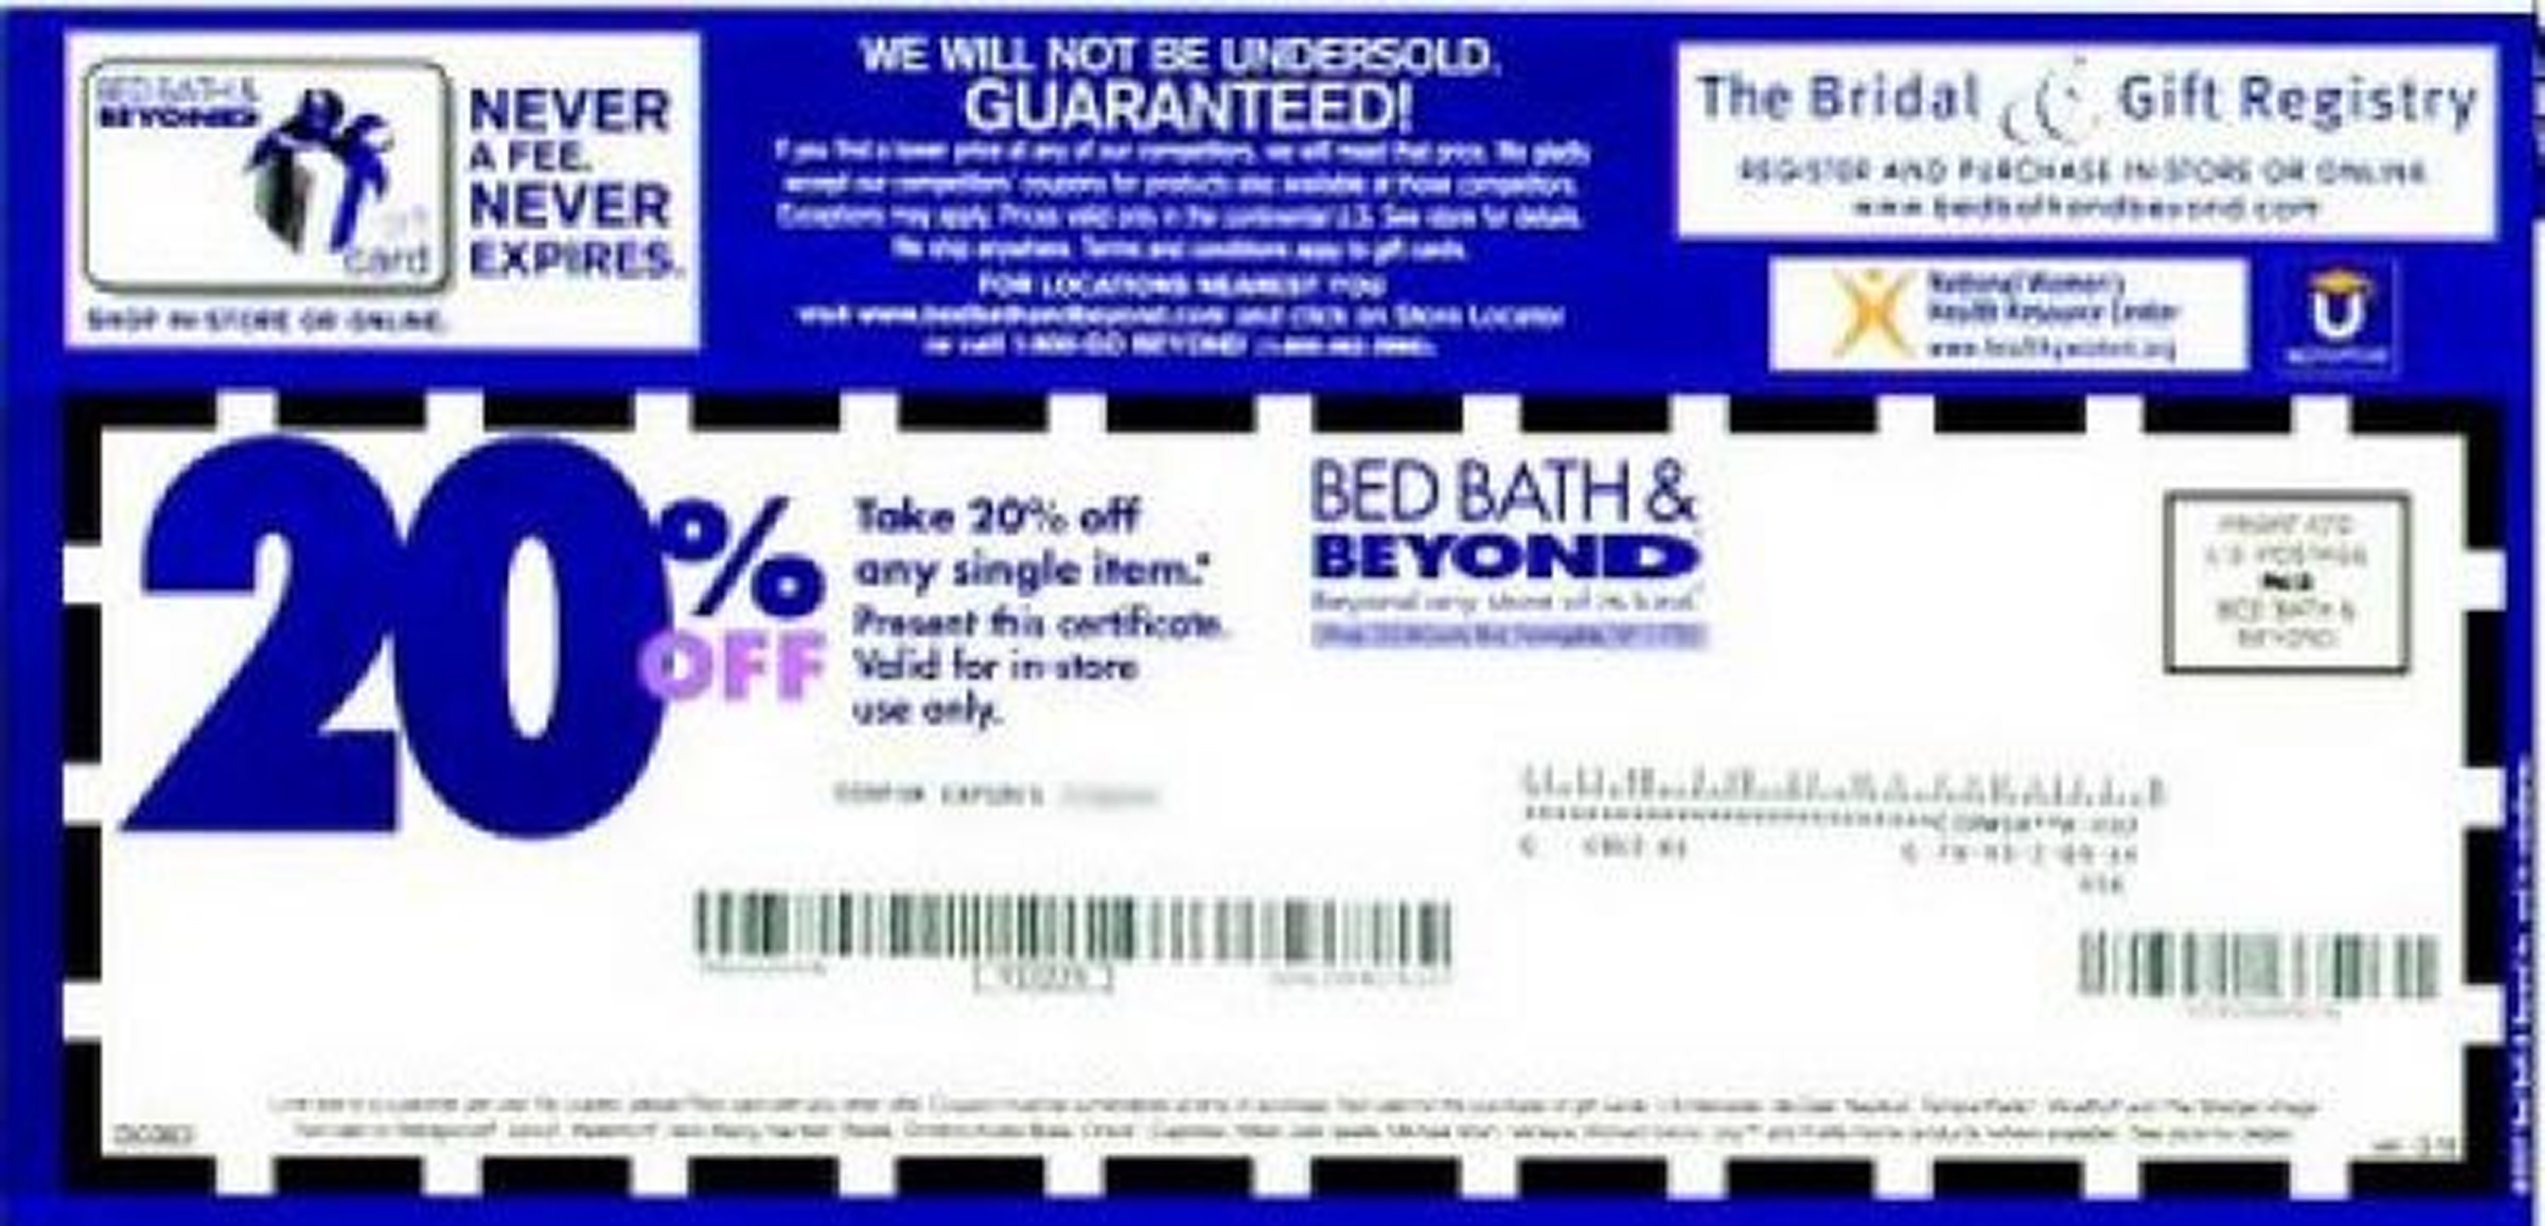 bed bath and beyond online coupons november 2019